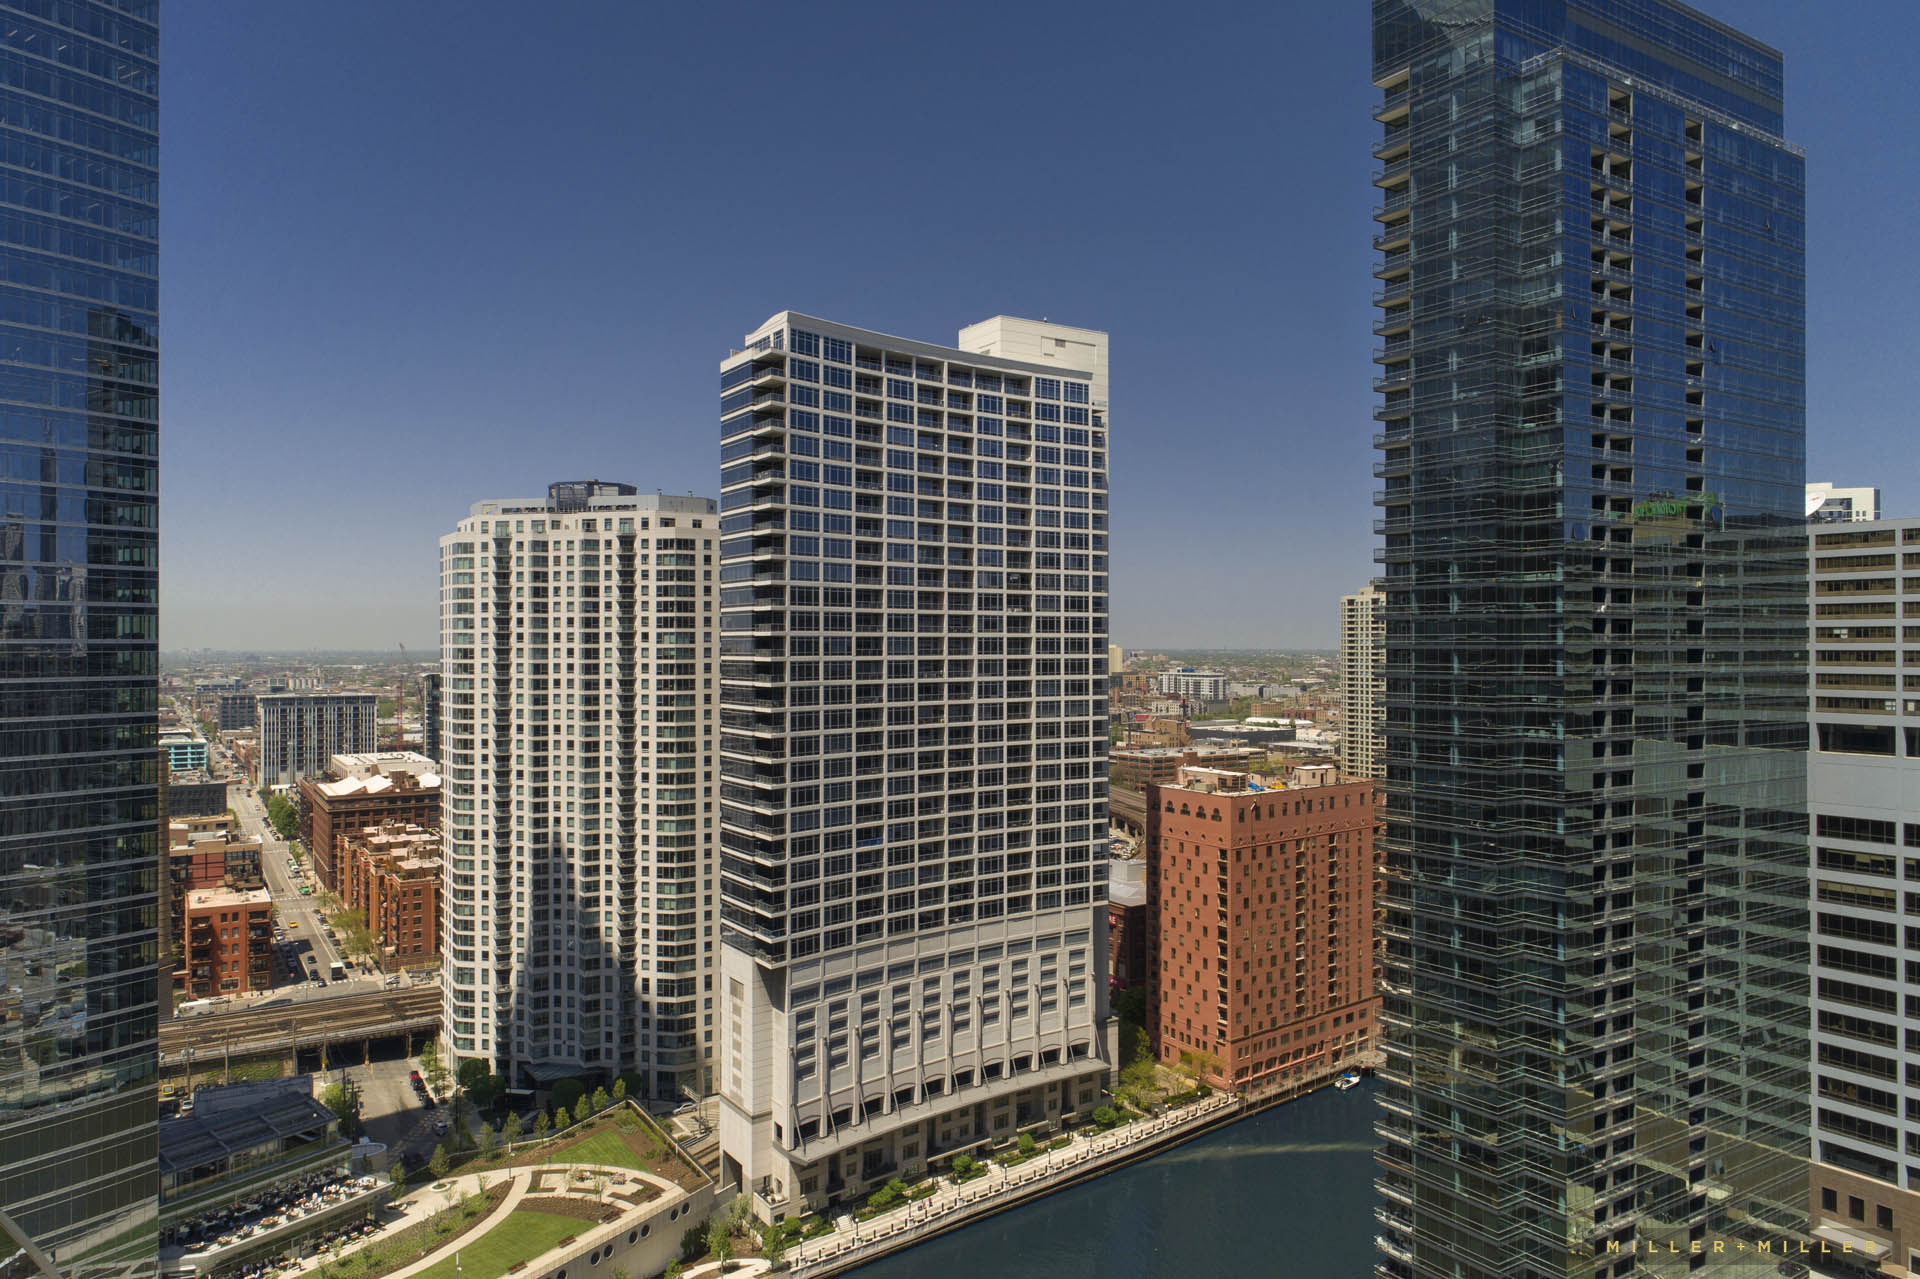 drone-photographer-chicago-river-skyscraper-buildings-photos